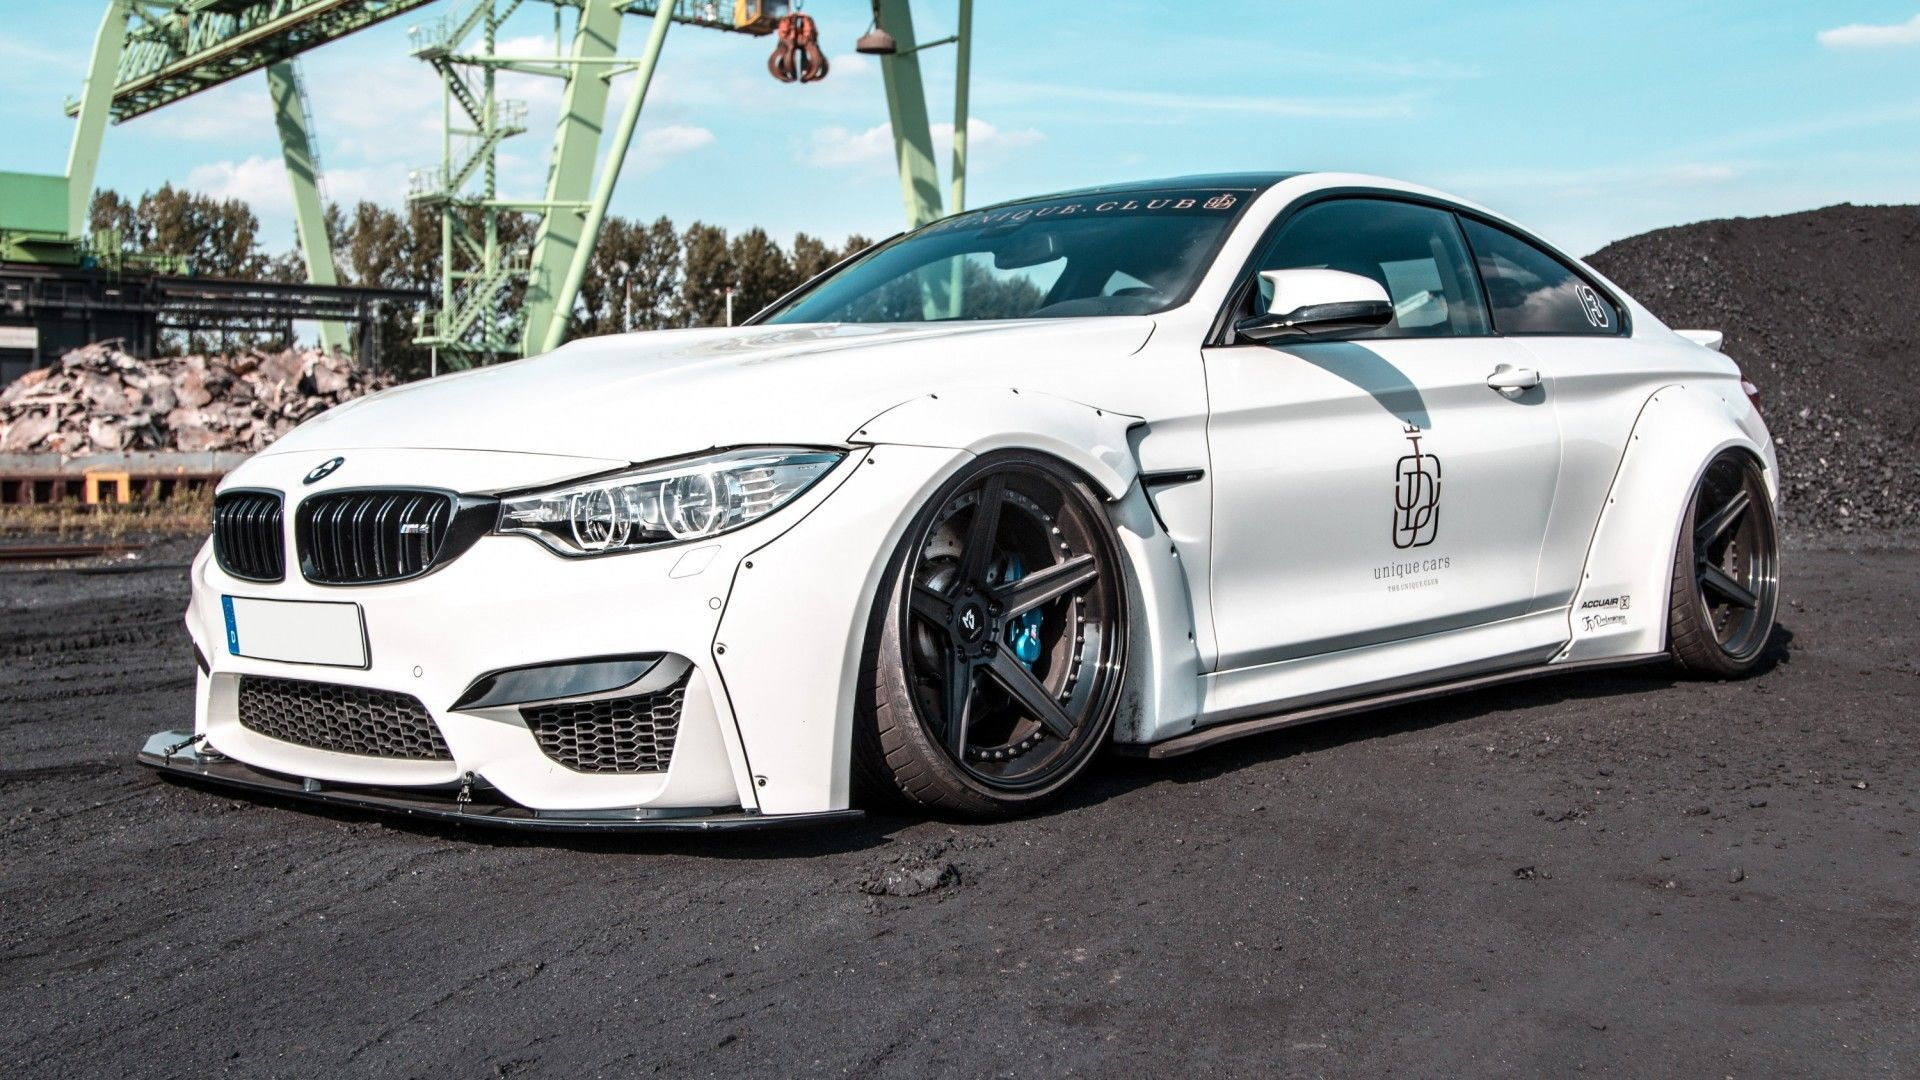 BMW M4 Liberty Walk mbDESIGN KV1.3 forged 10,5x20 + 12x20